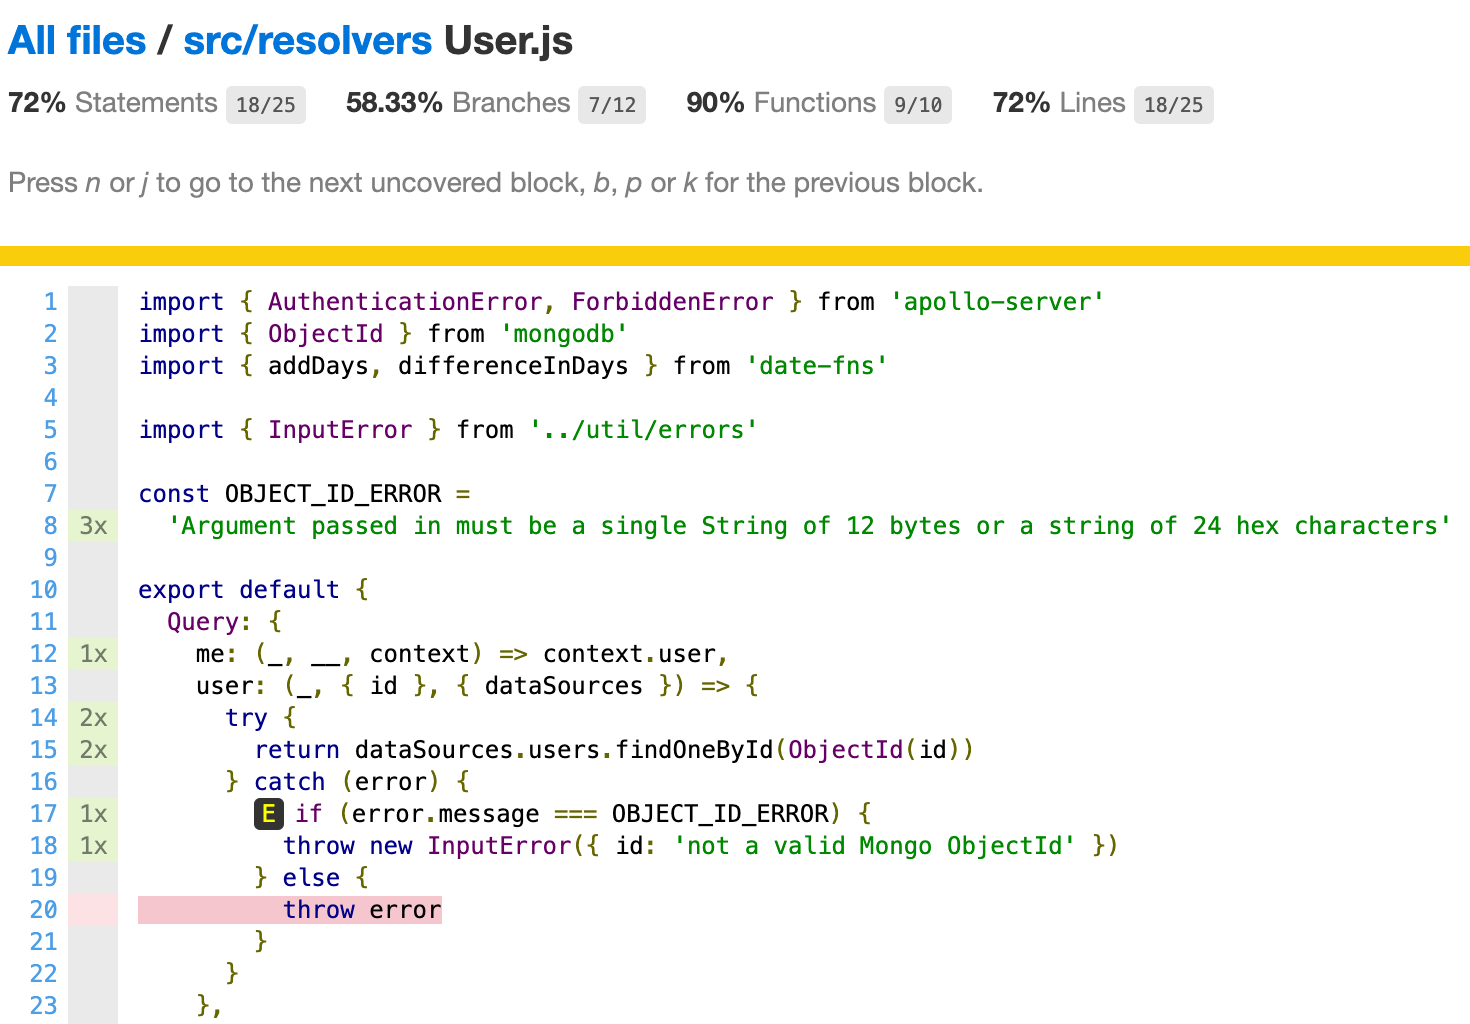 User.js coverage showing 72%